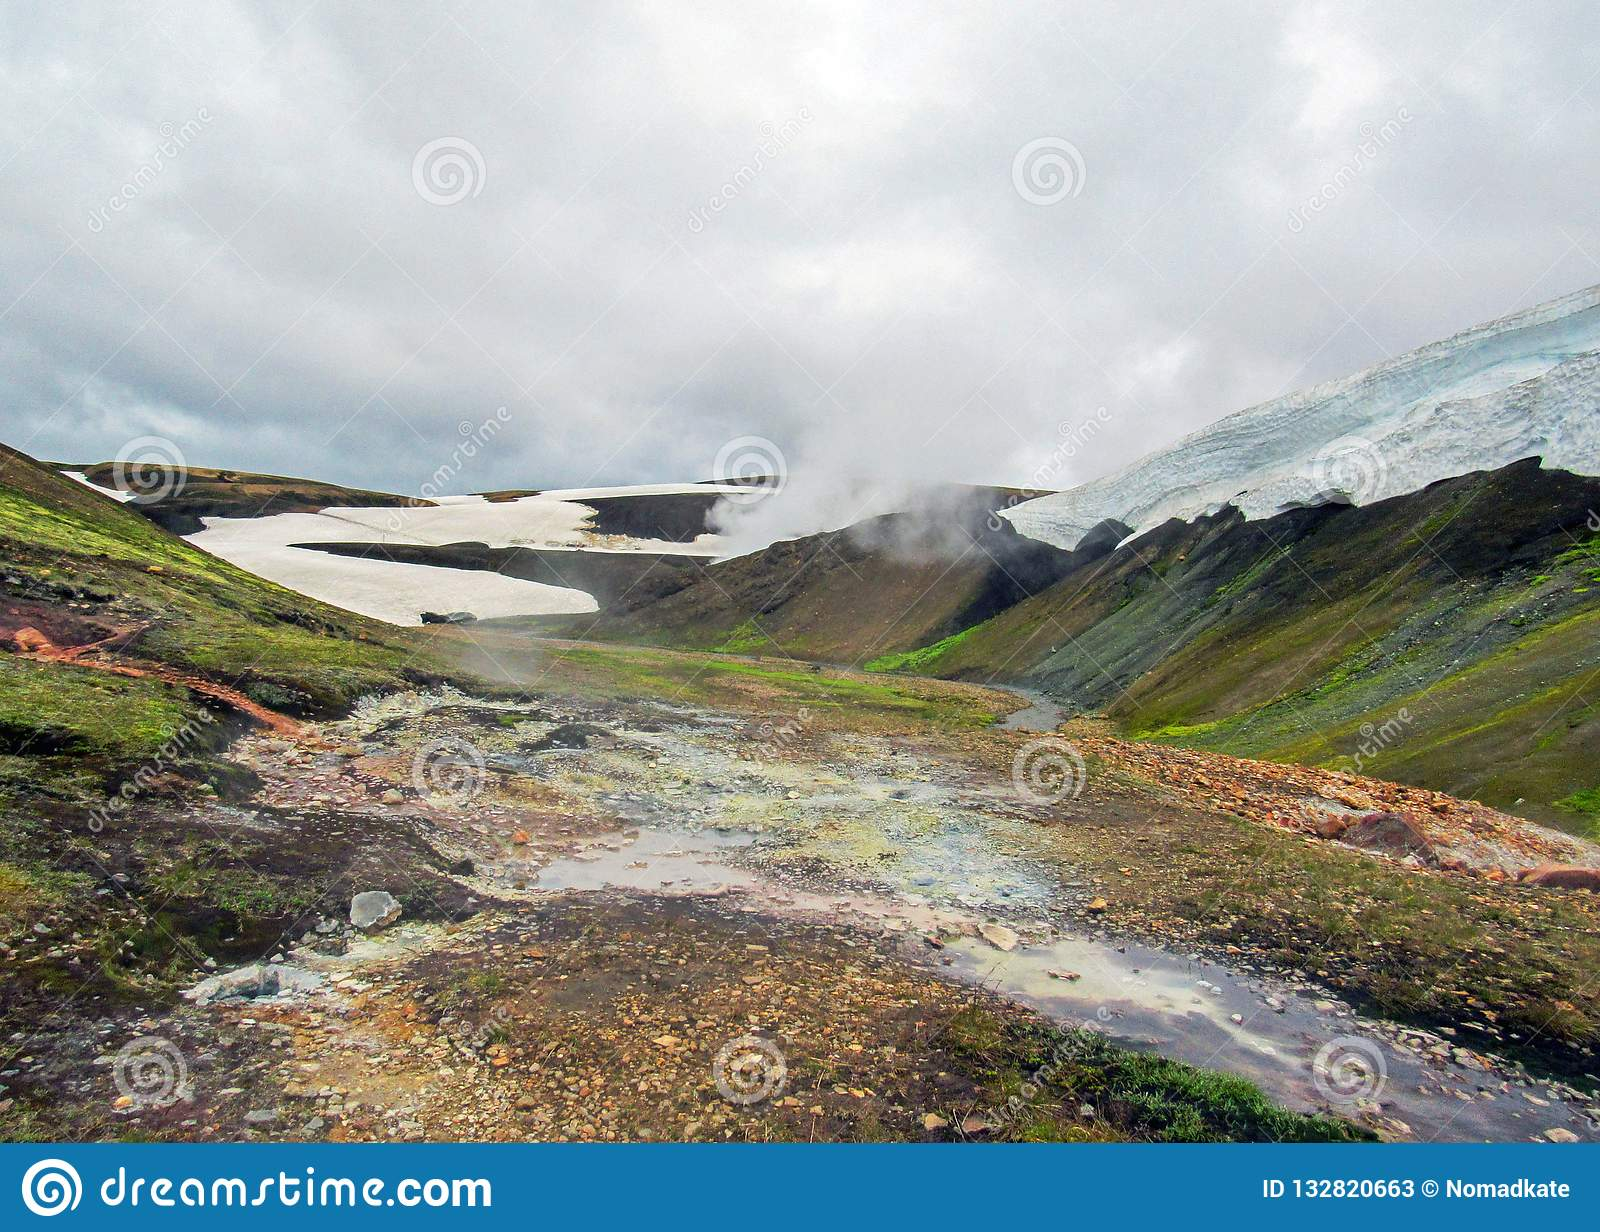 Landmannalaugar geothermal area with its steaming hot springs and colorful rhyolite mountains, Laugavegur Trek, Iceland